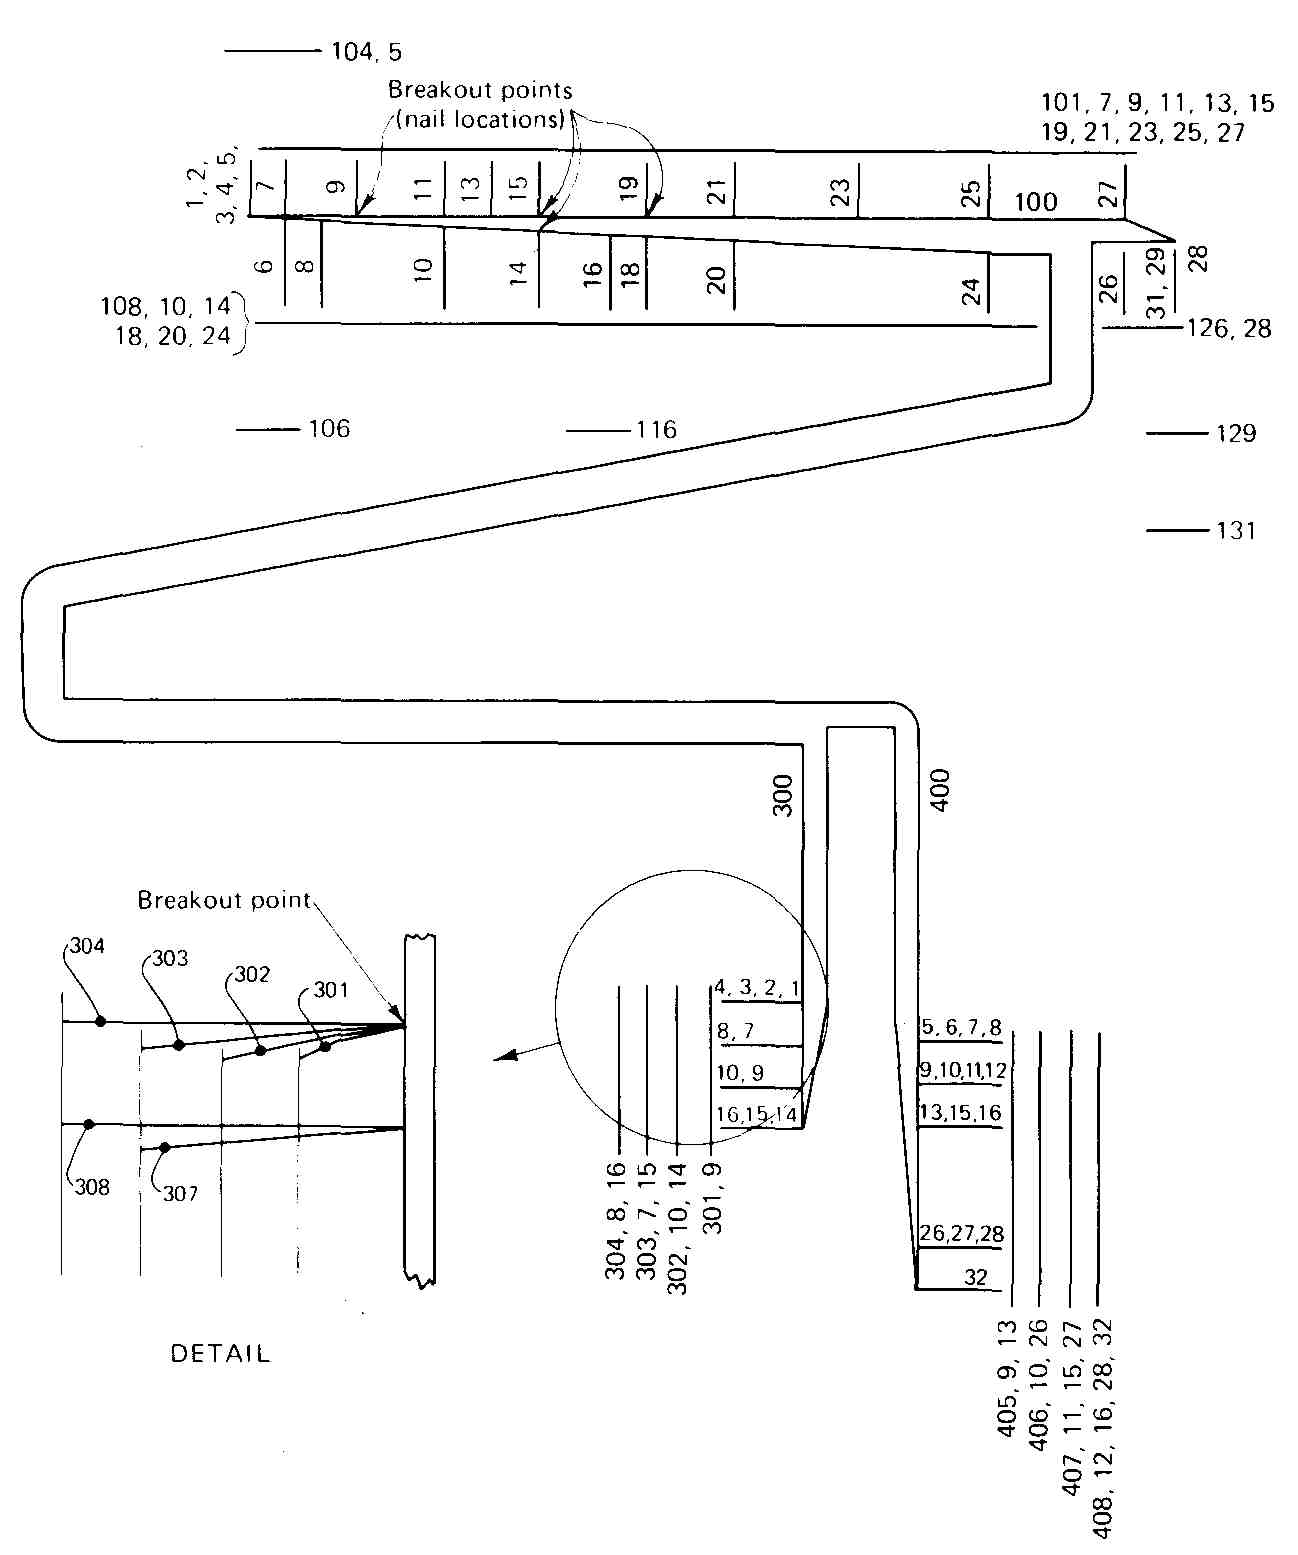 Wiring Cabling And Chassis Drawings Part 1 15a Voltage Regulator Electronic Circuits Diagramelectronics Fig 14 A Harness Drawing Intended For Installation Purposes